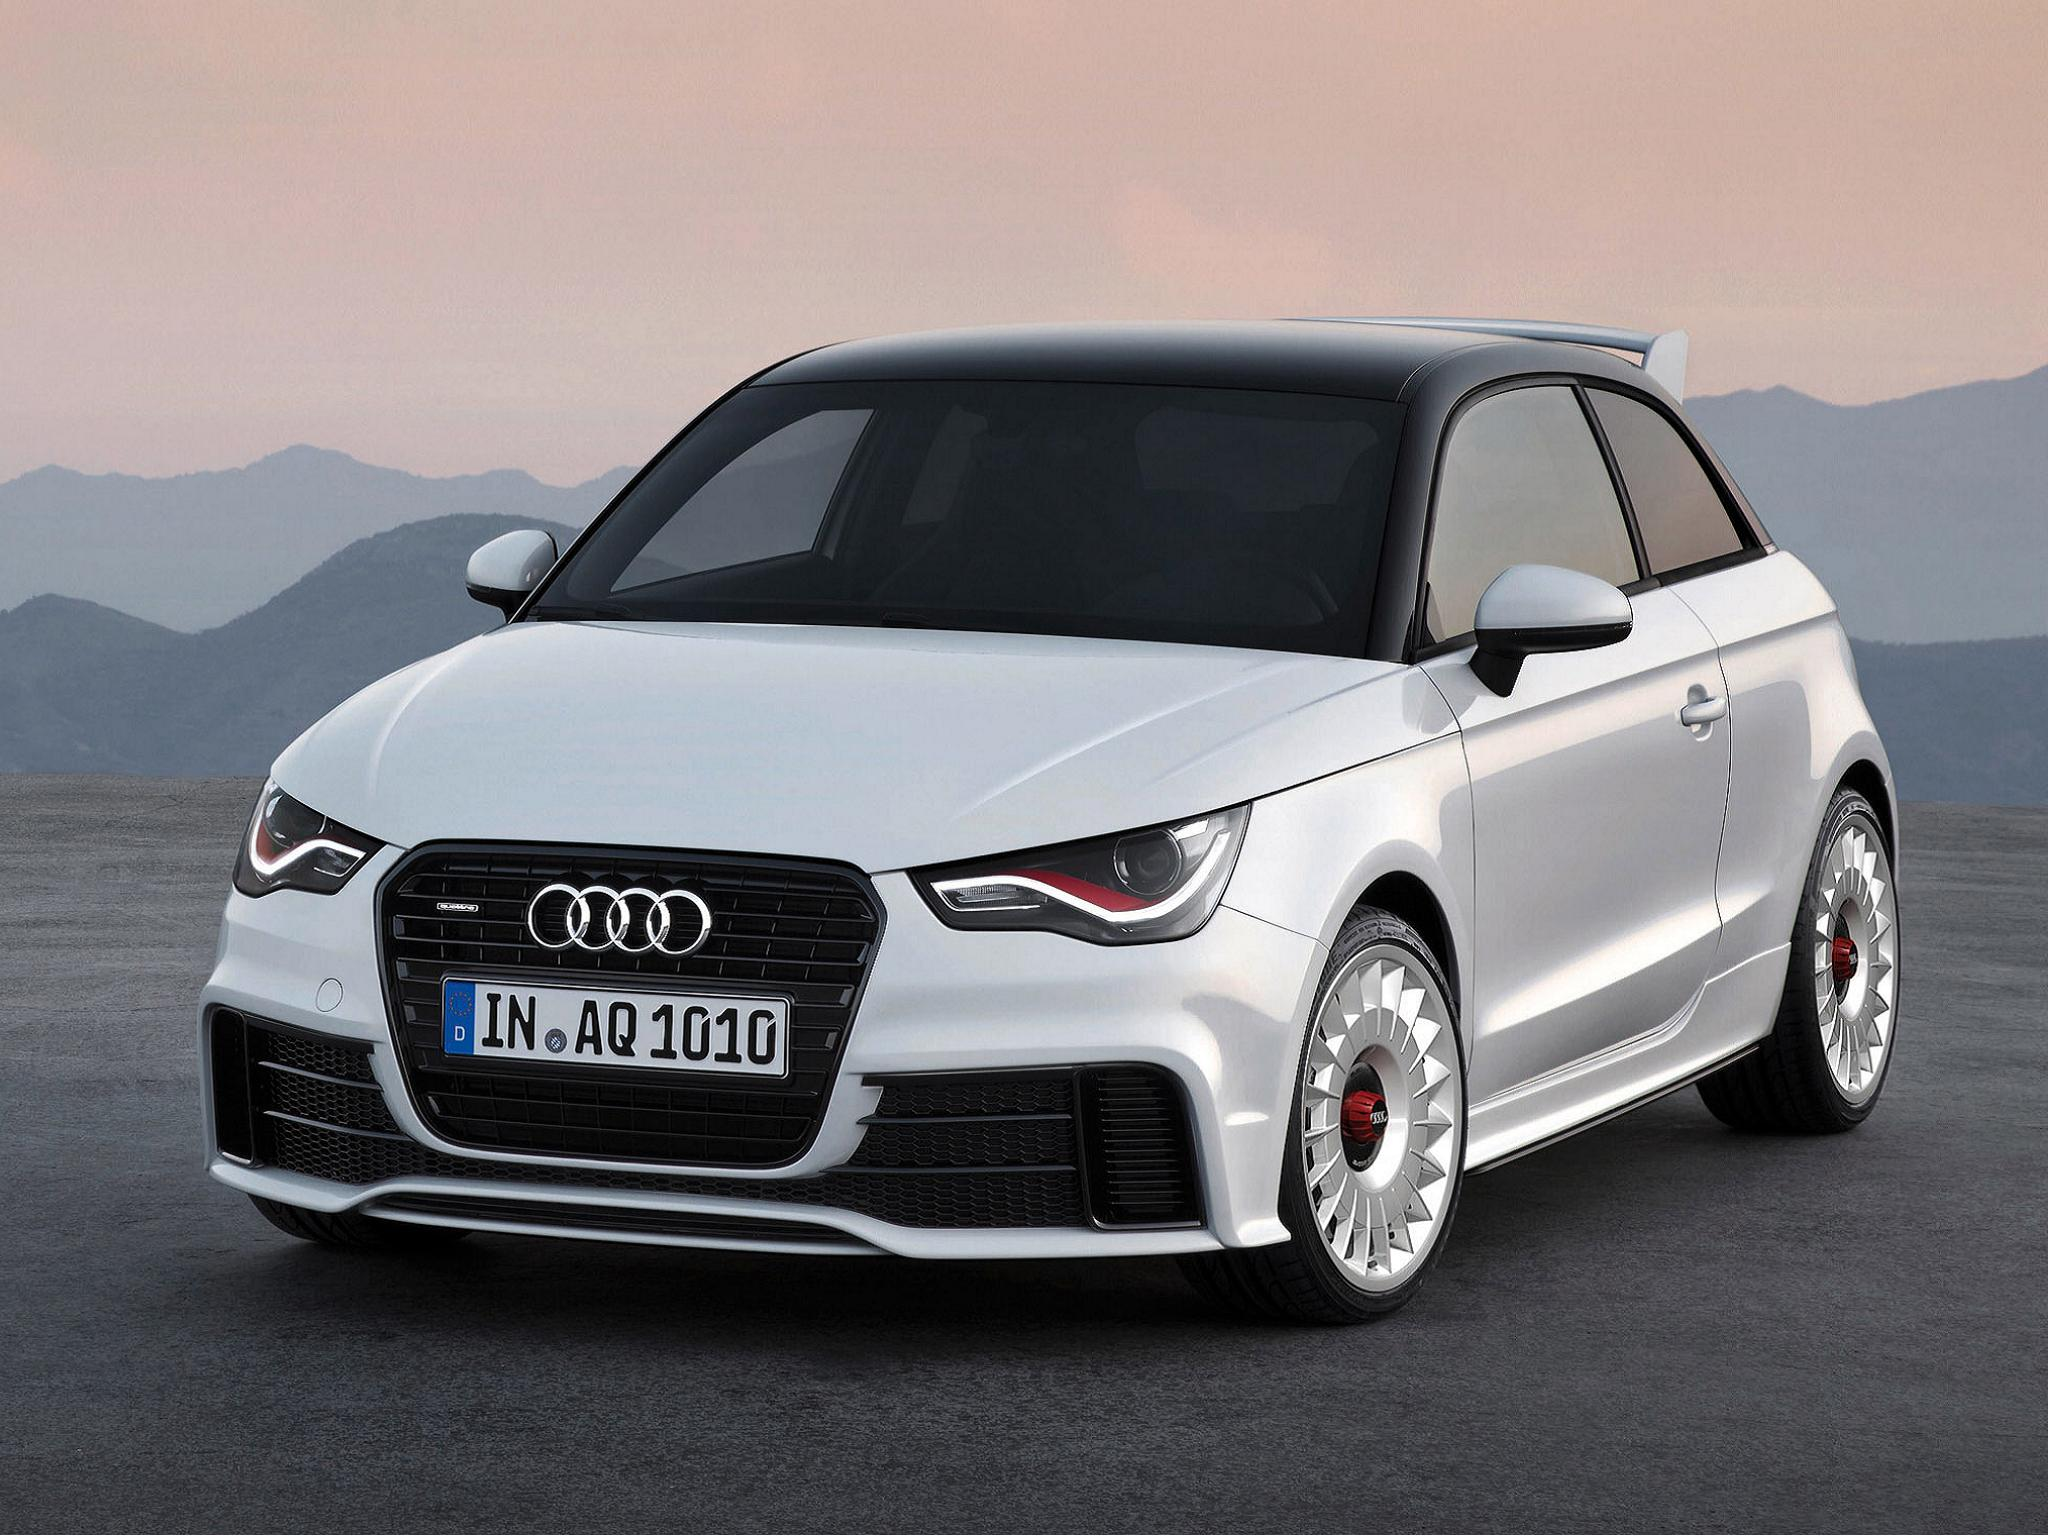 audi a1 quattro technical details history photos on better parts ltd. Black Bedroom Furniture Sets. Home Design Ideas